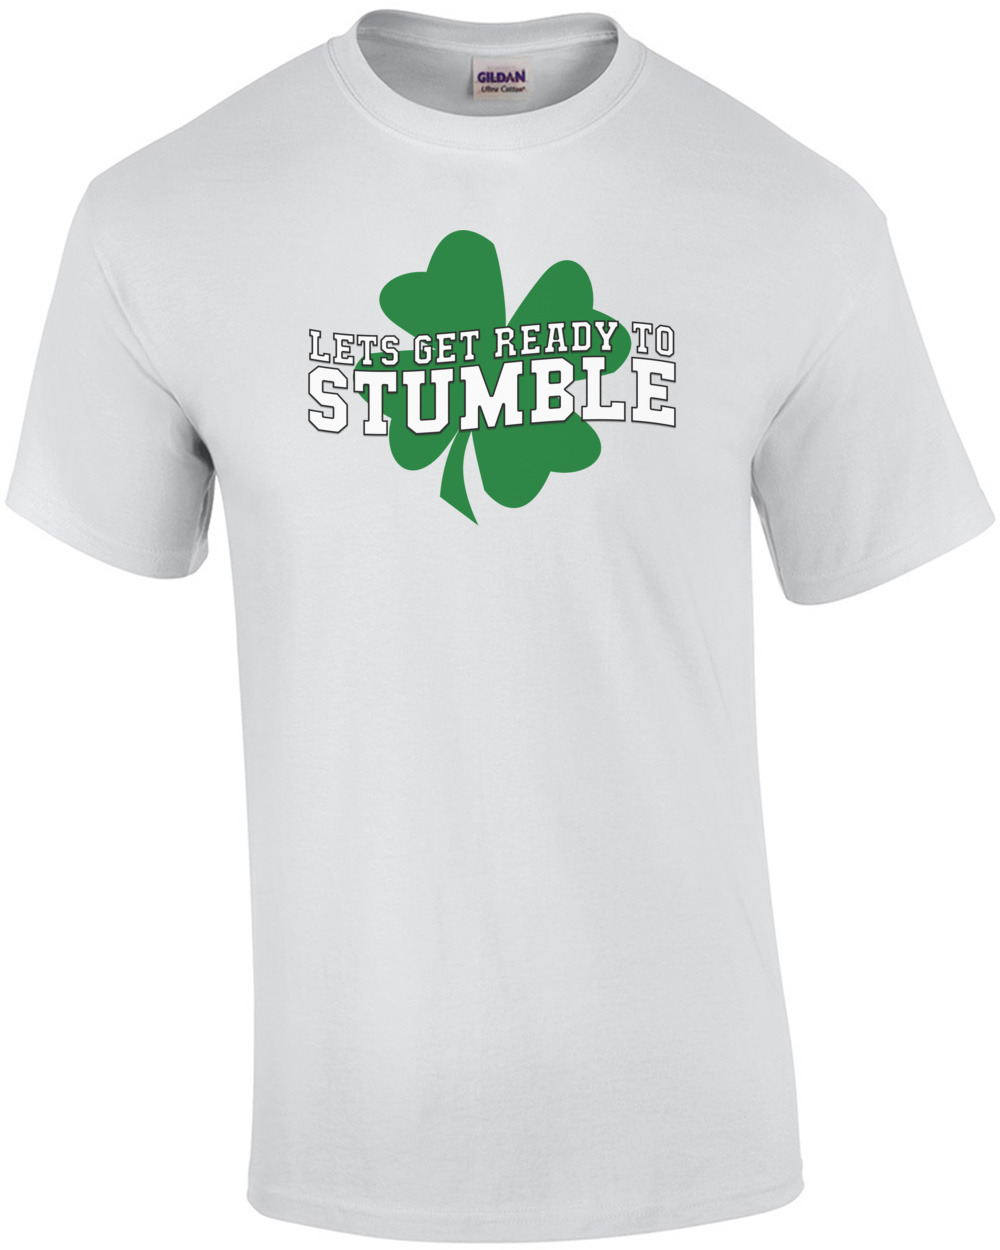 Let's Get Ready To Stumble T Shirt